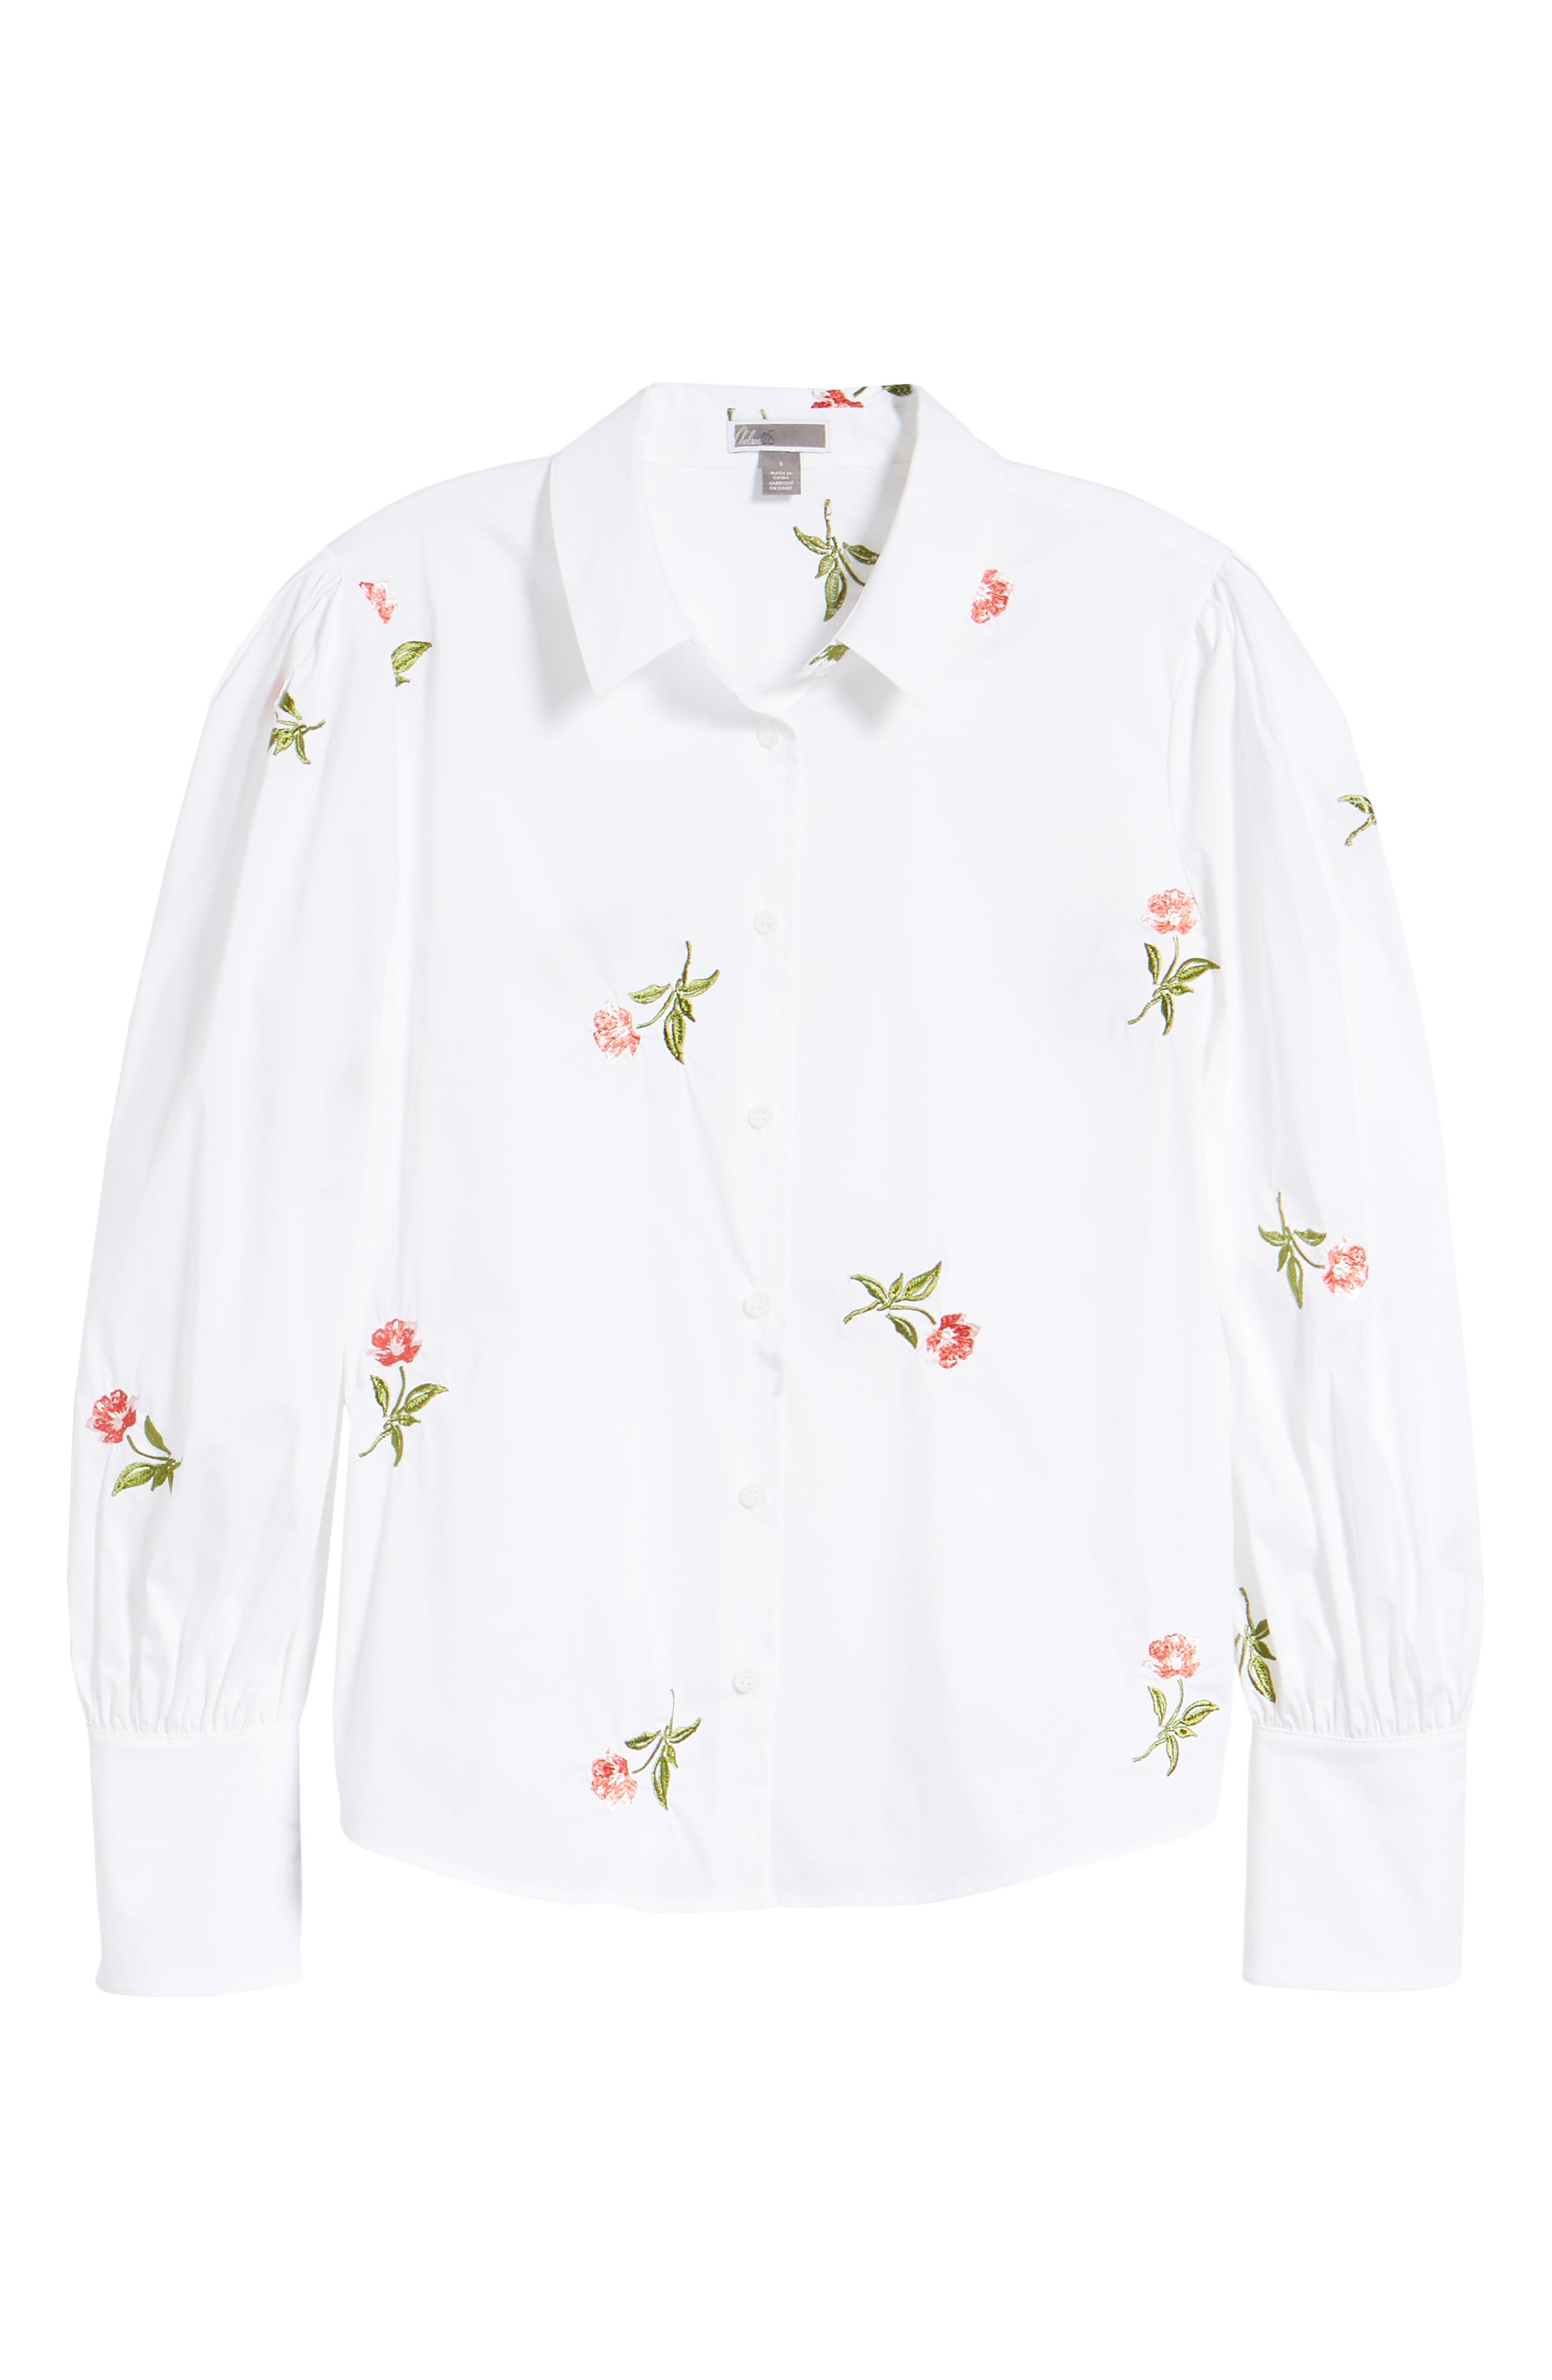 Embroidered Woven Shirt,                             Alternate thumbnail 7, color,                             White- Coral Bud Embroidery